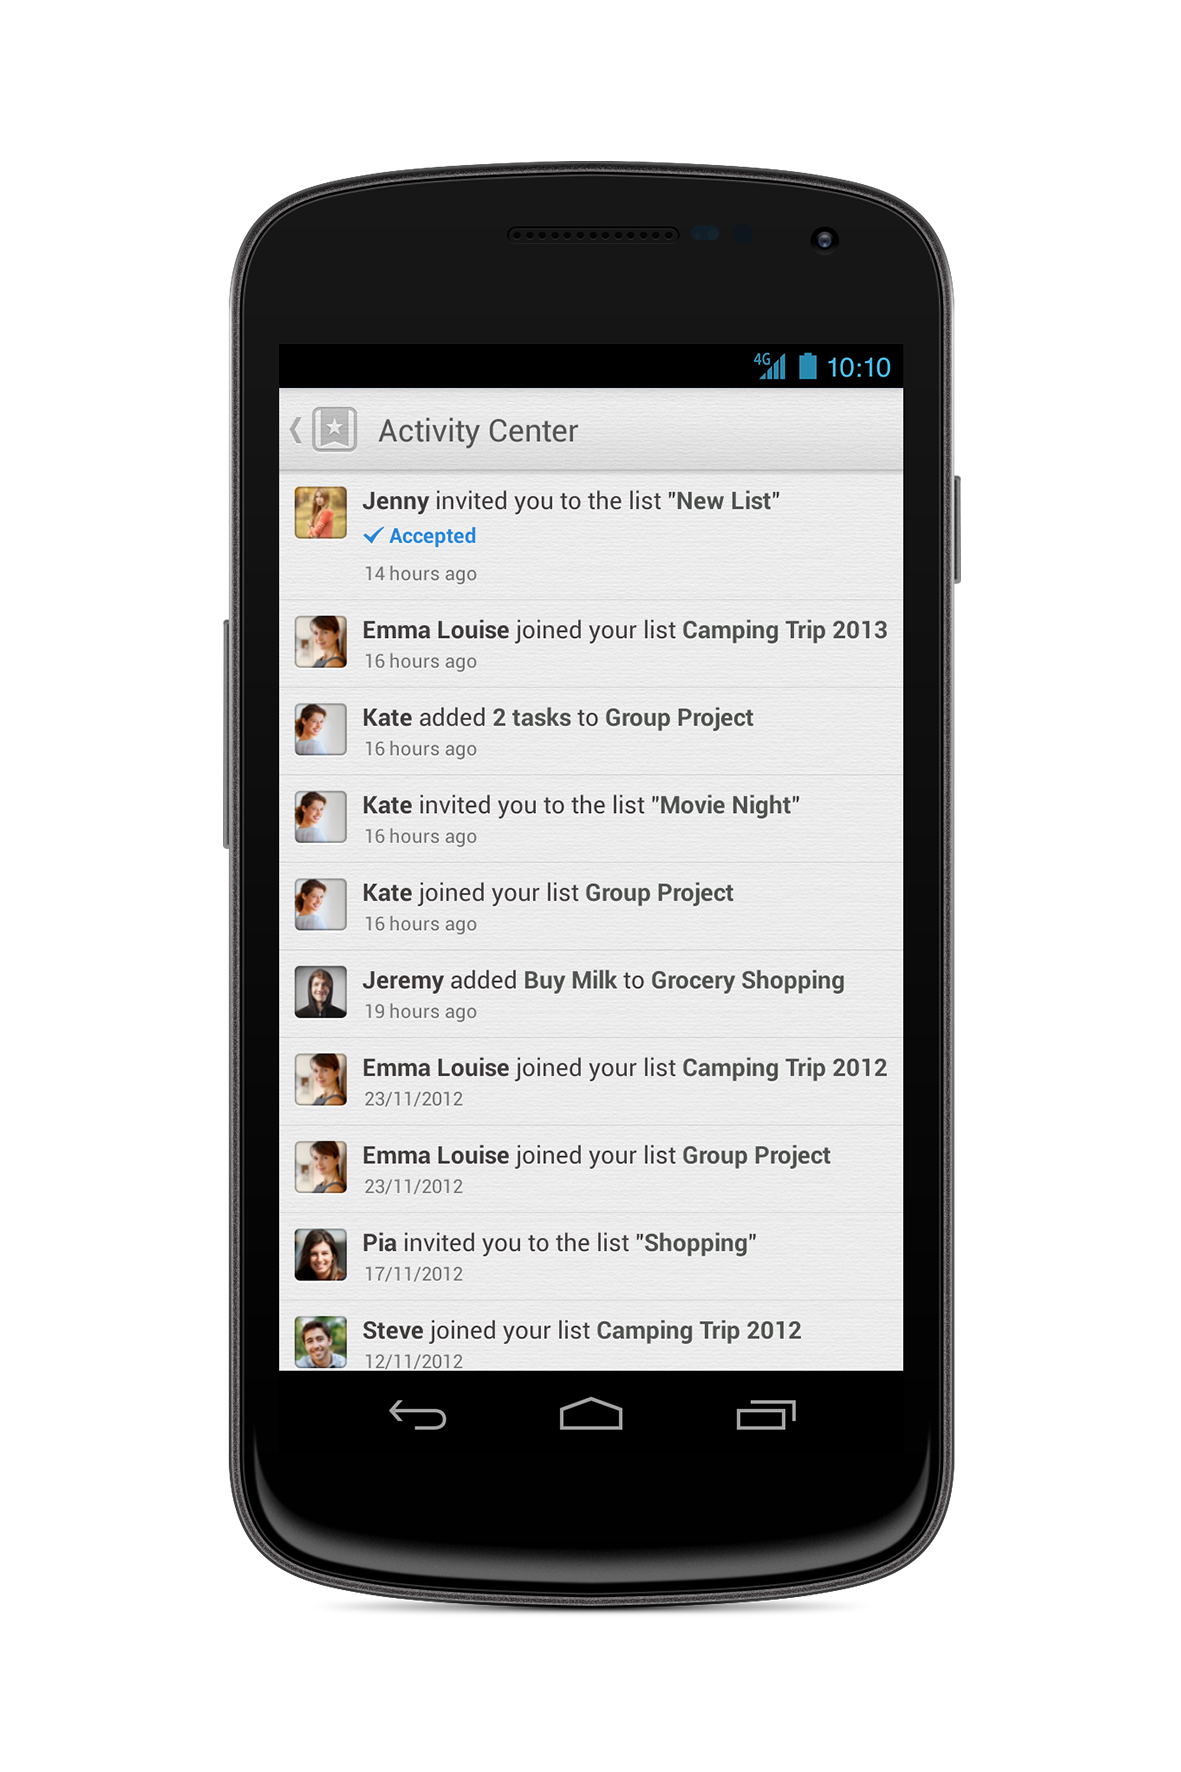 Wunderlist 2 Activity Center